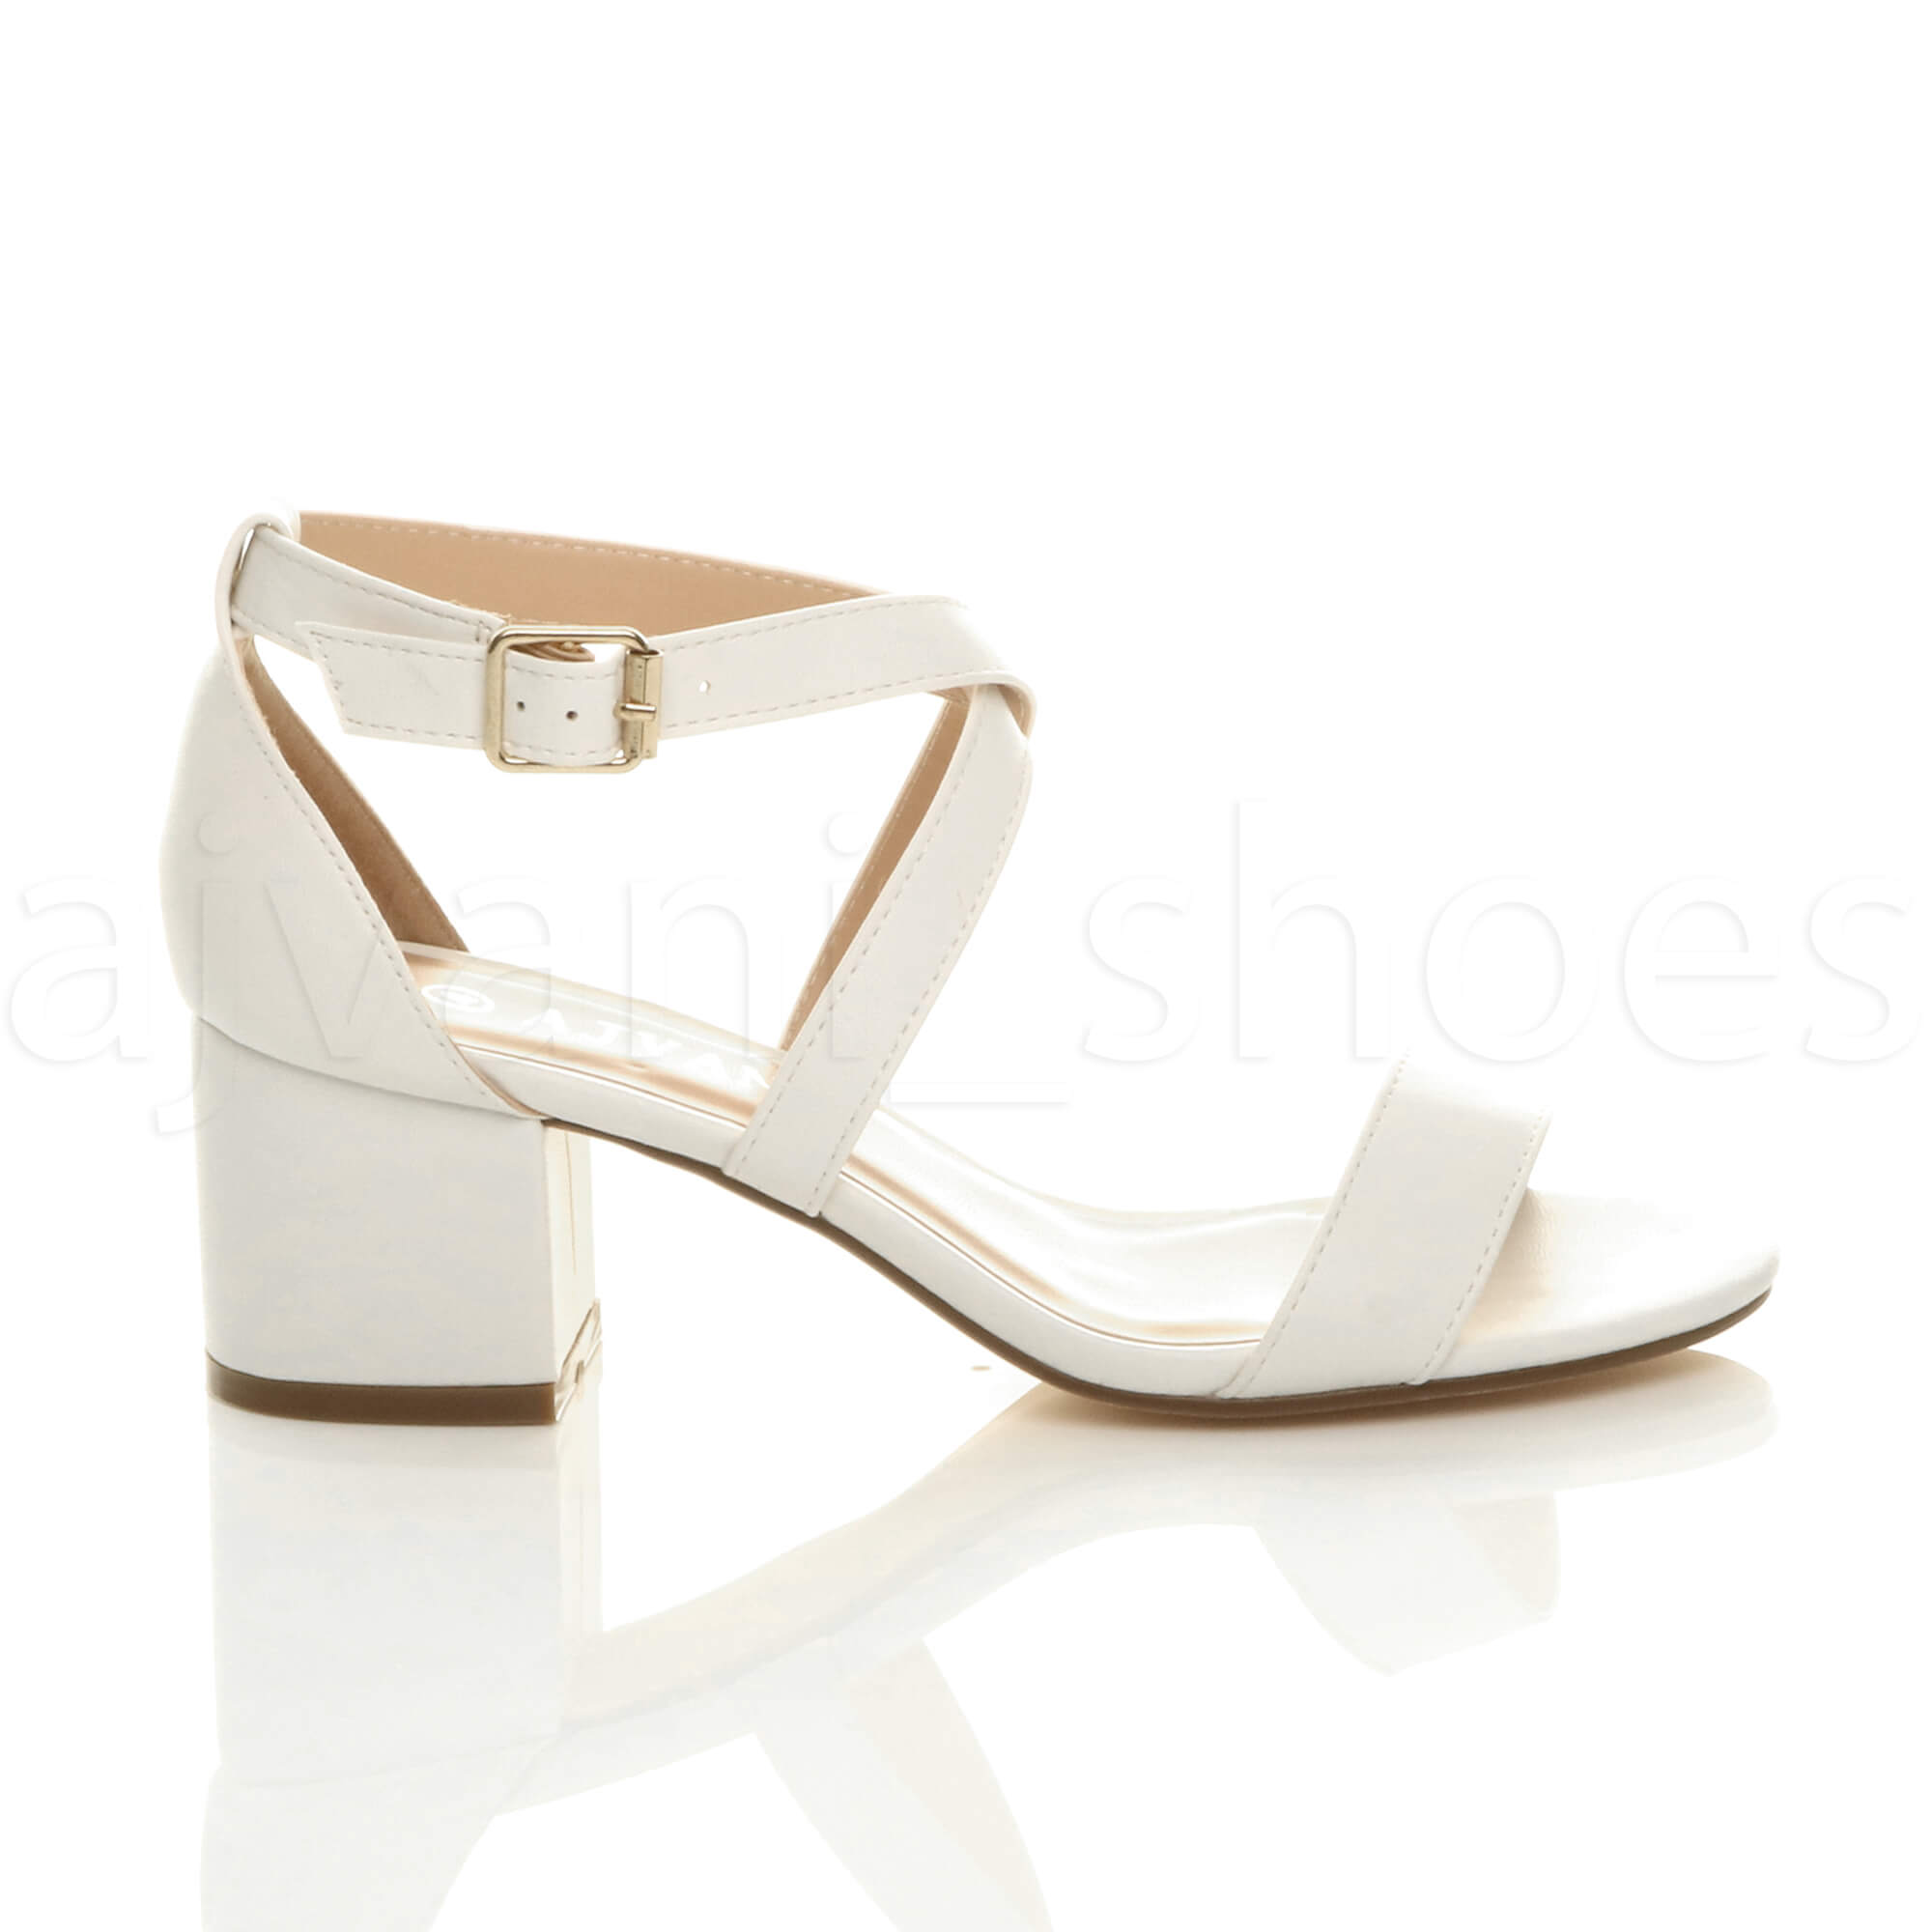 WOMENS-LADIES-MID-LOW-BLOCK-HEEL-CROSS-STRAPS-PARTY-STRAPPY-SANDALS-SHOES-SIZE thumbnail 98